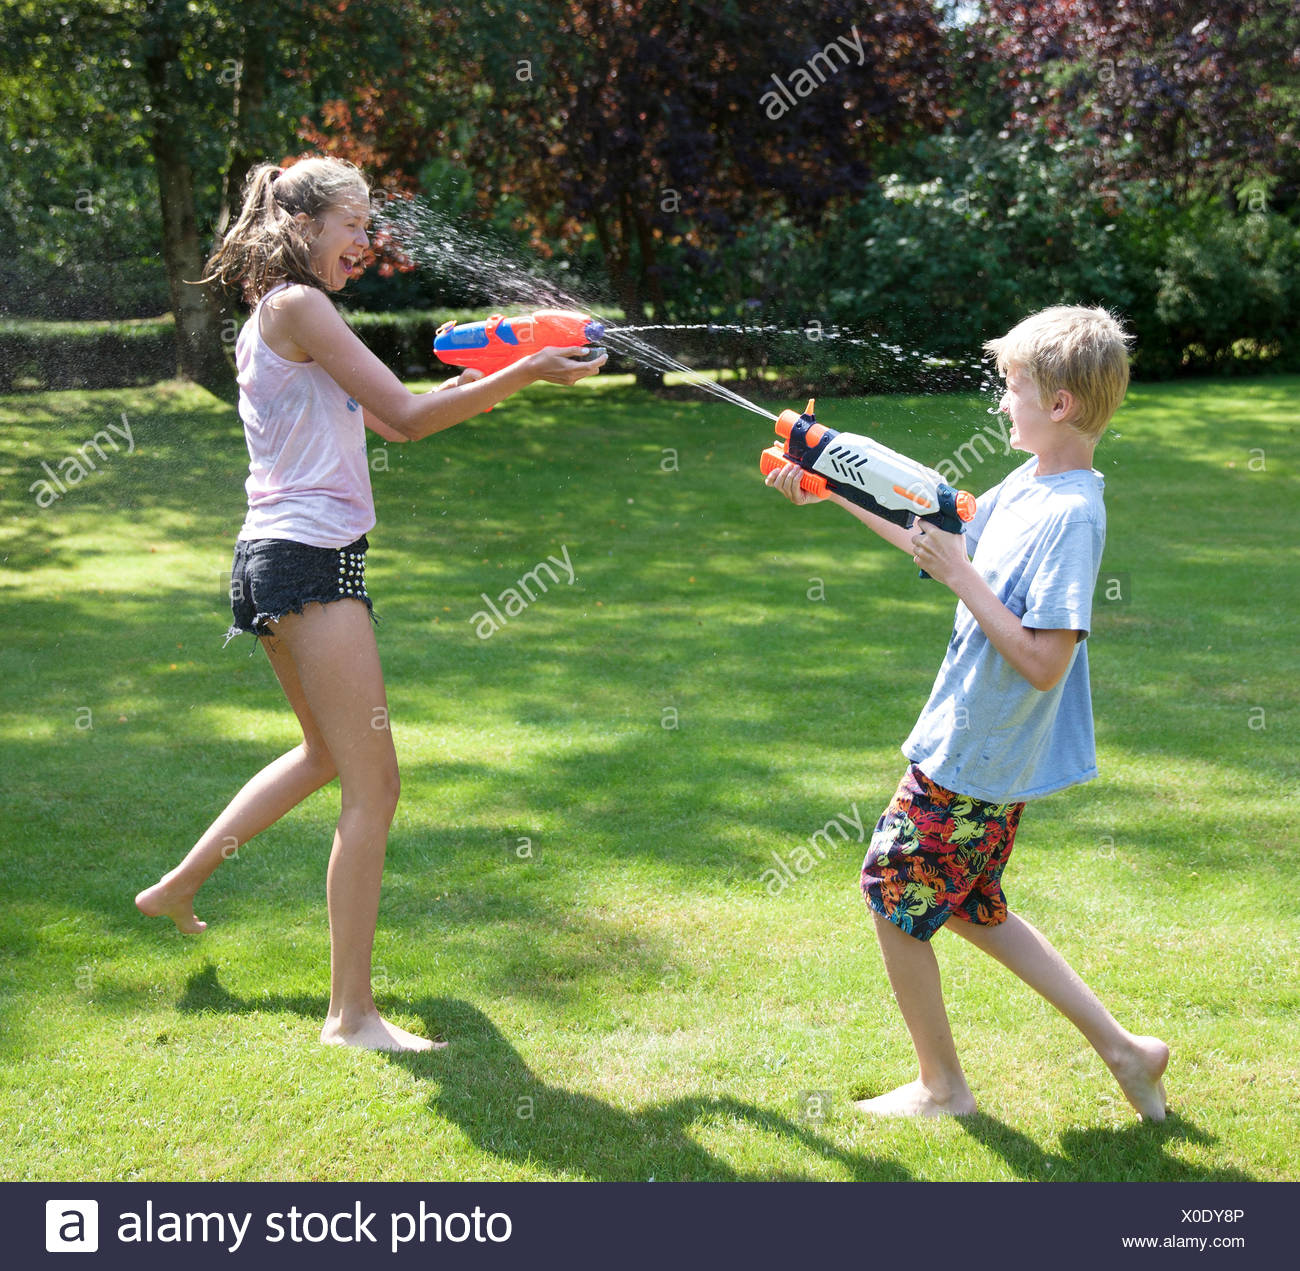 Brother and sister play fighting with water guns in garden - Stock Image